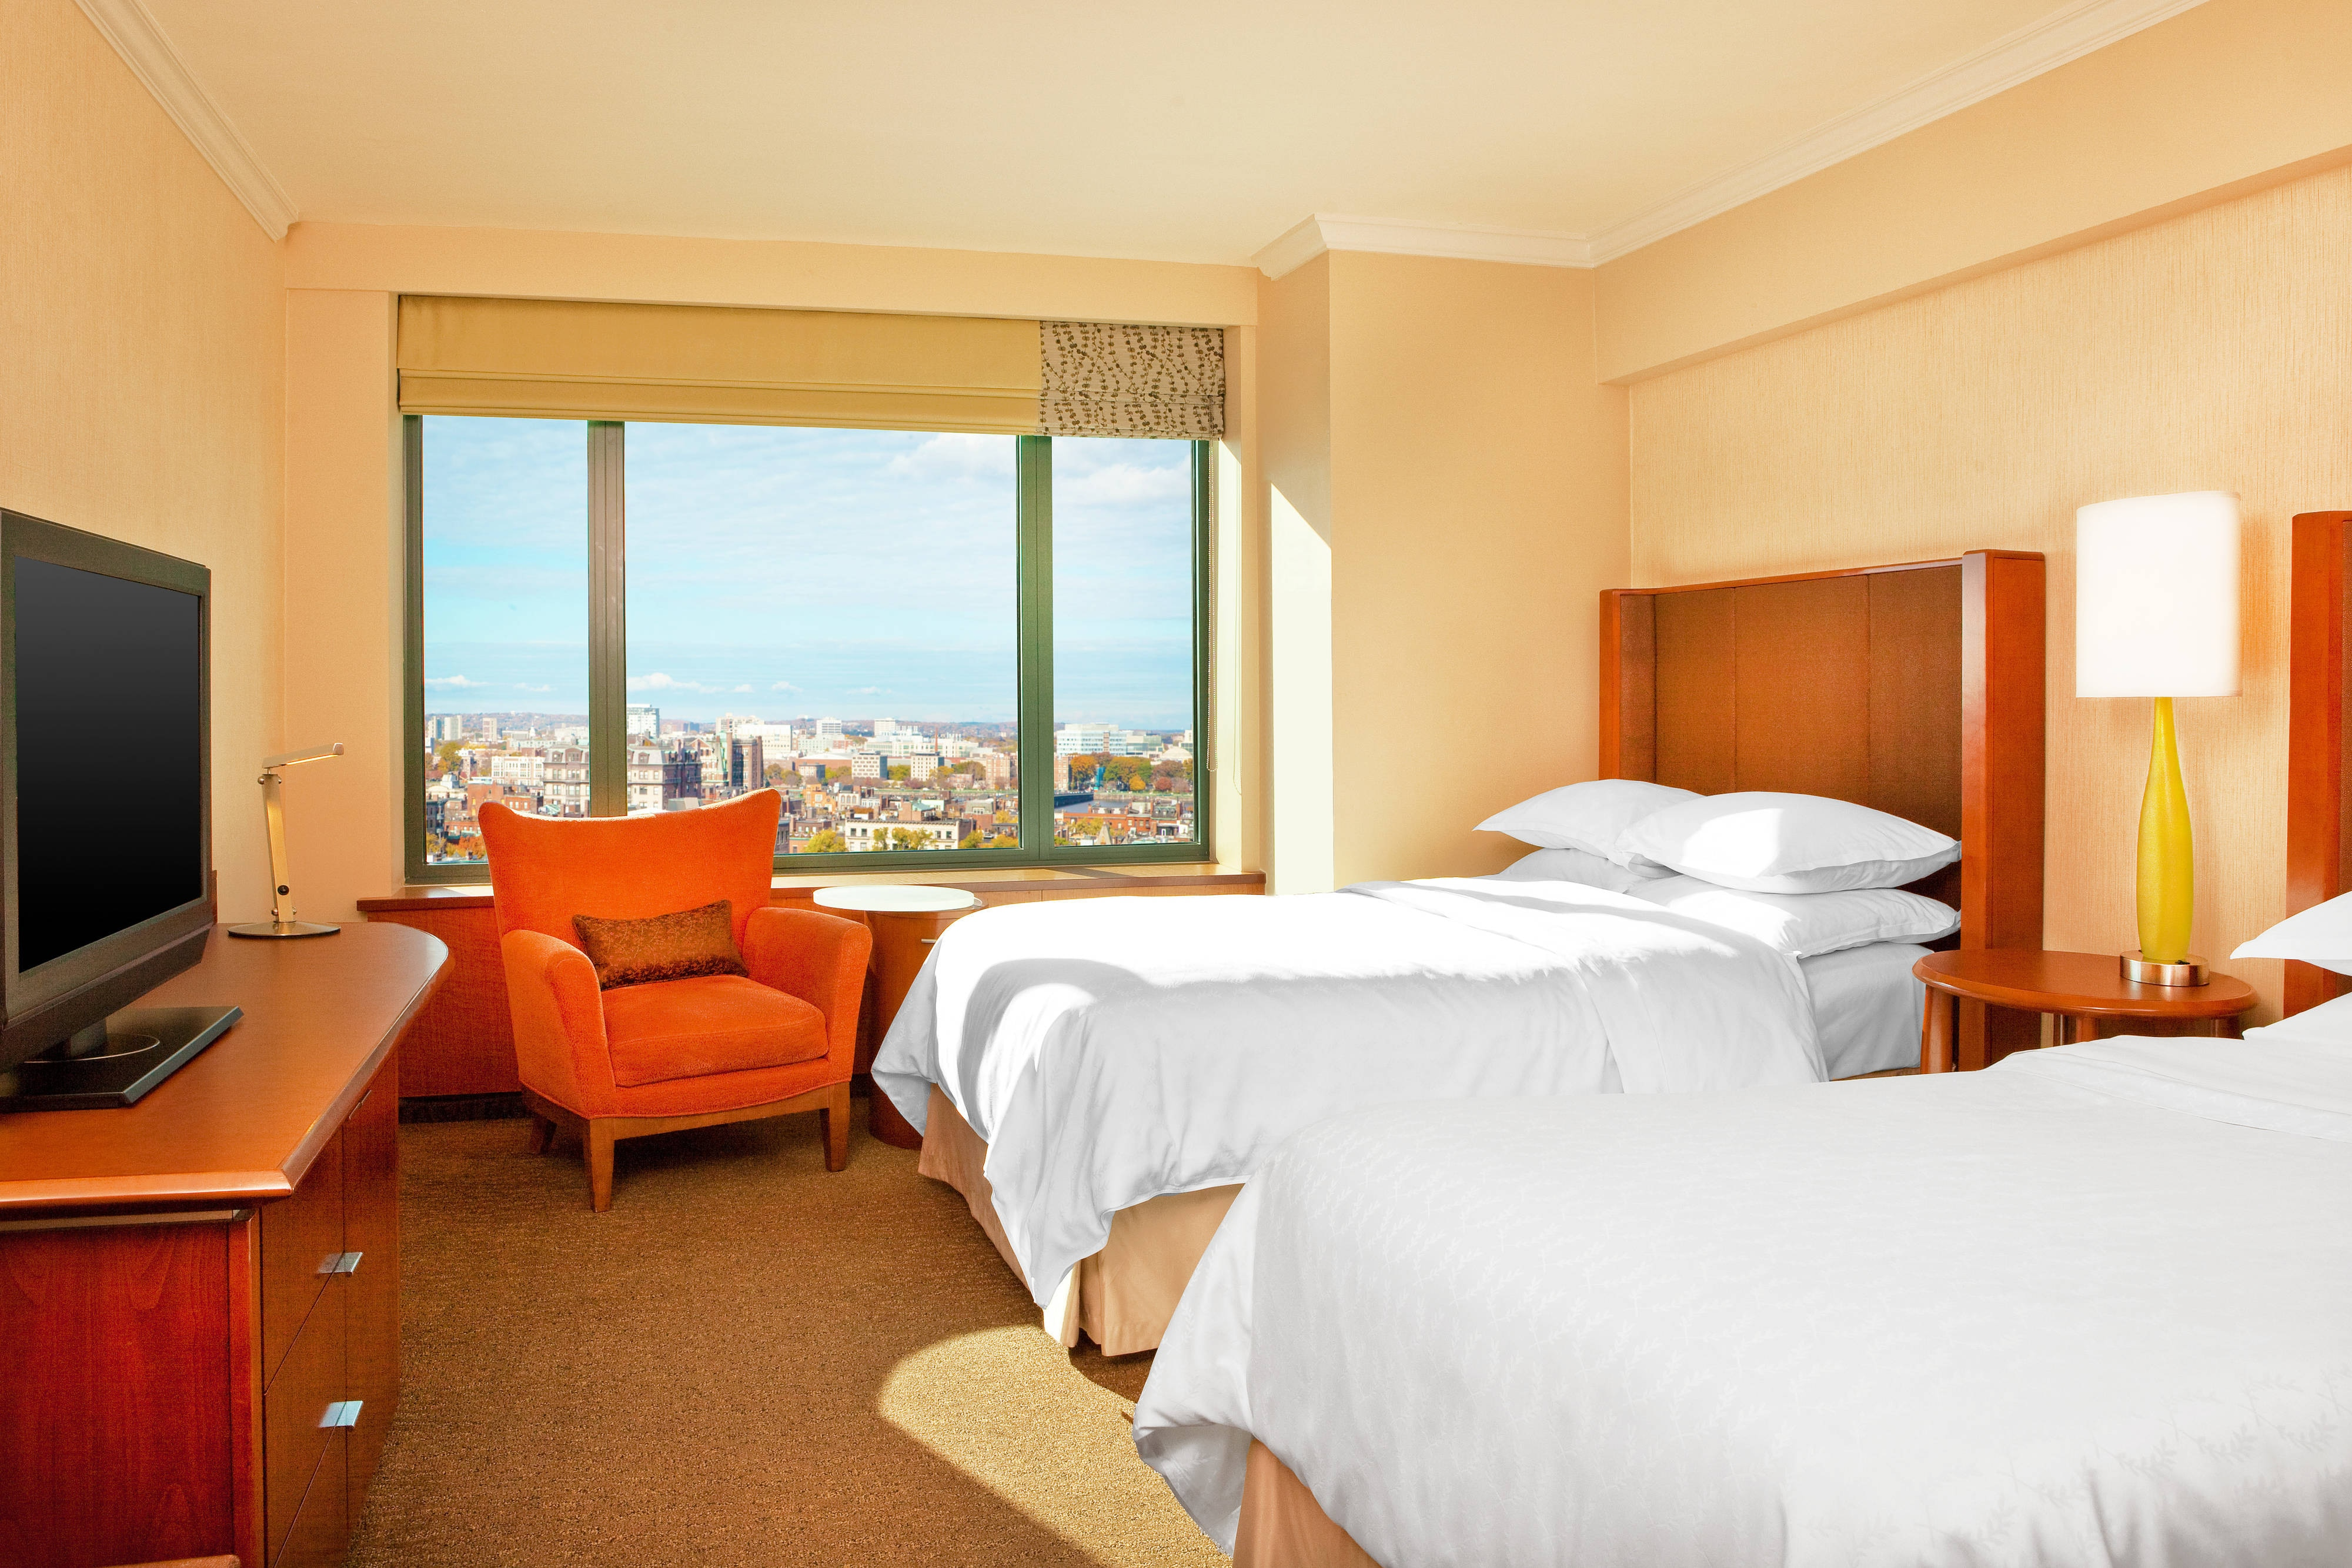 Sheraton boston hotel boston spg - Hotels with 2 bedroom suites in boston ma ...